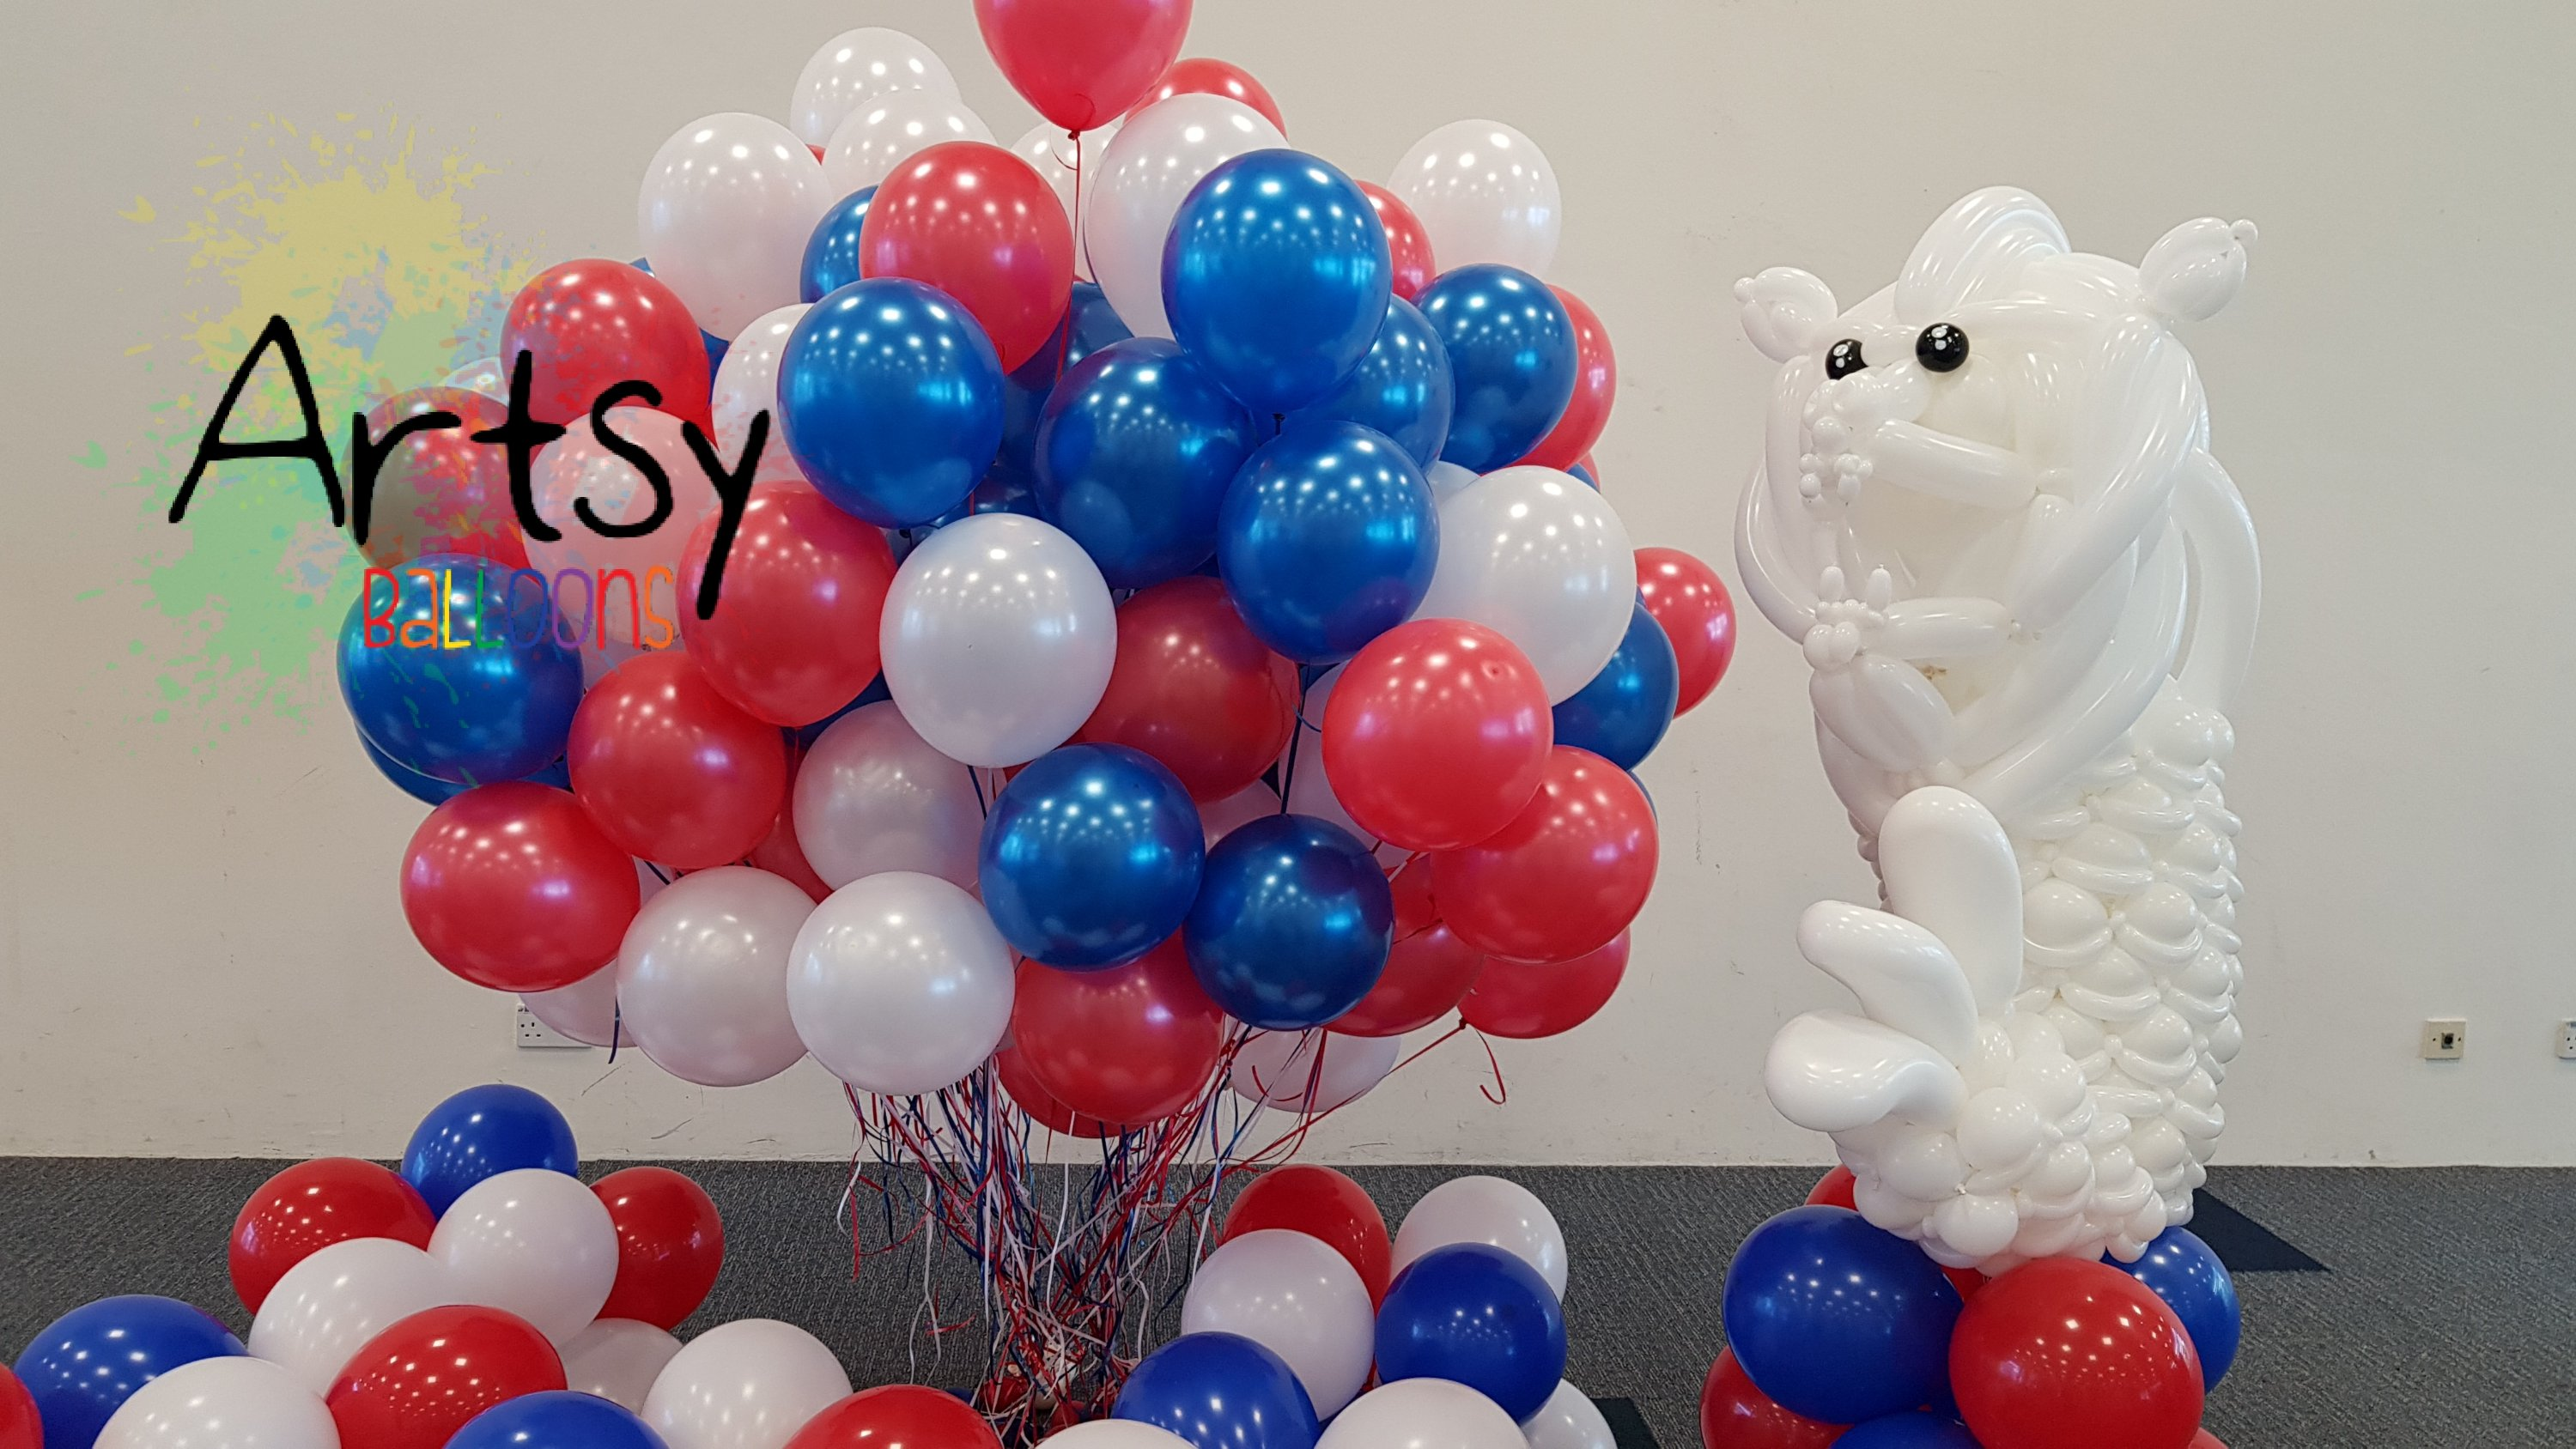 , Balloon decorations for NTU orientation for Overseas students!, Singapore Balloon Decoration Services - Balloon Workshop and Balloon Sculpting